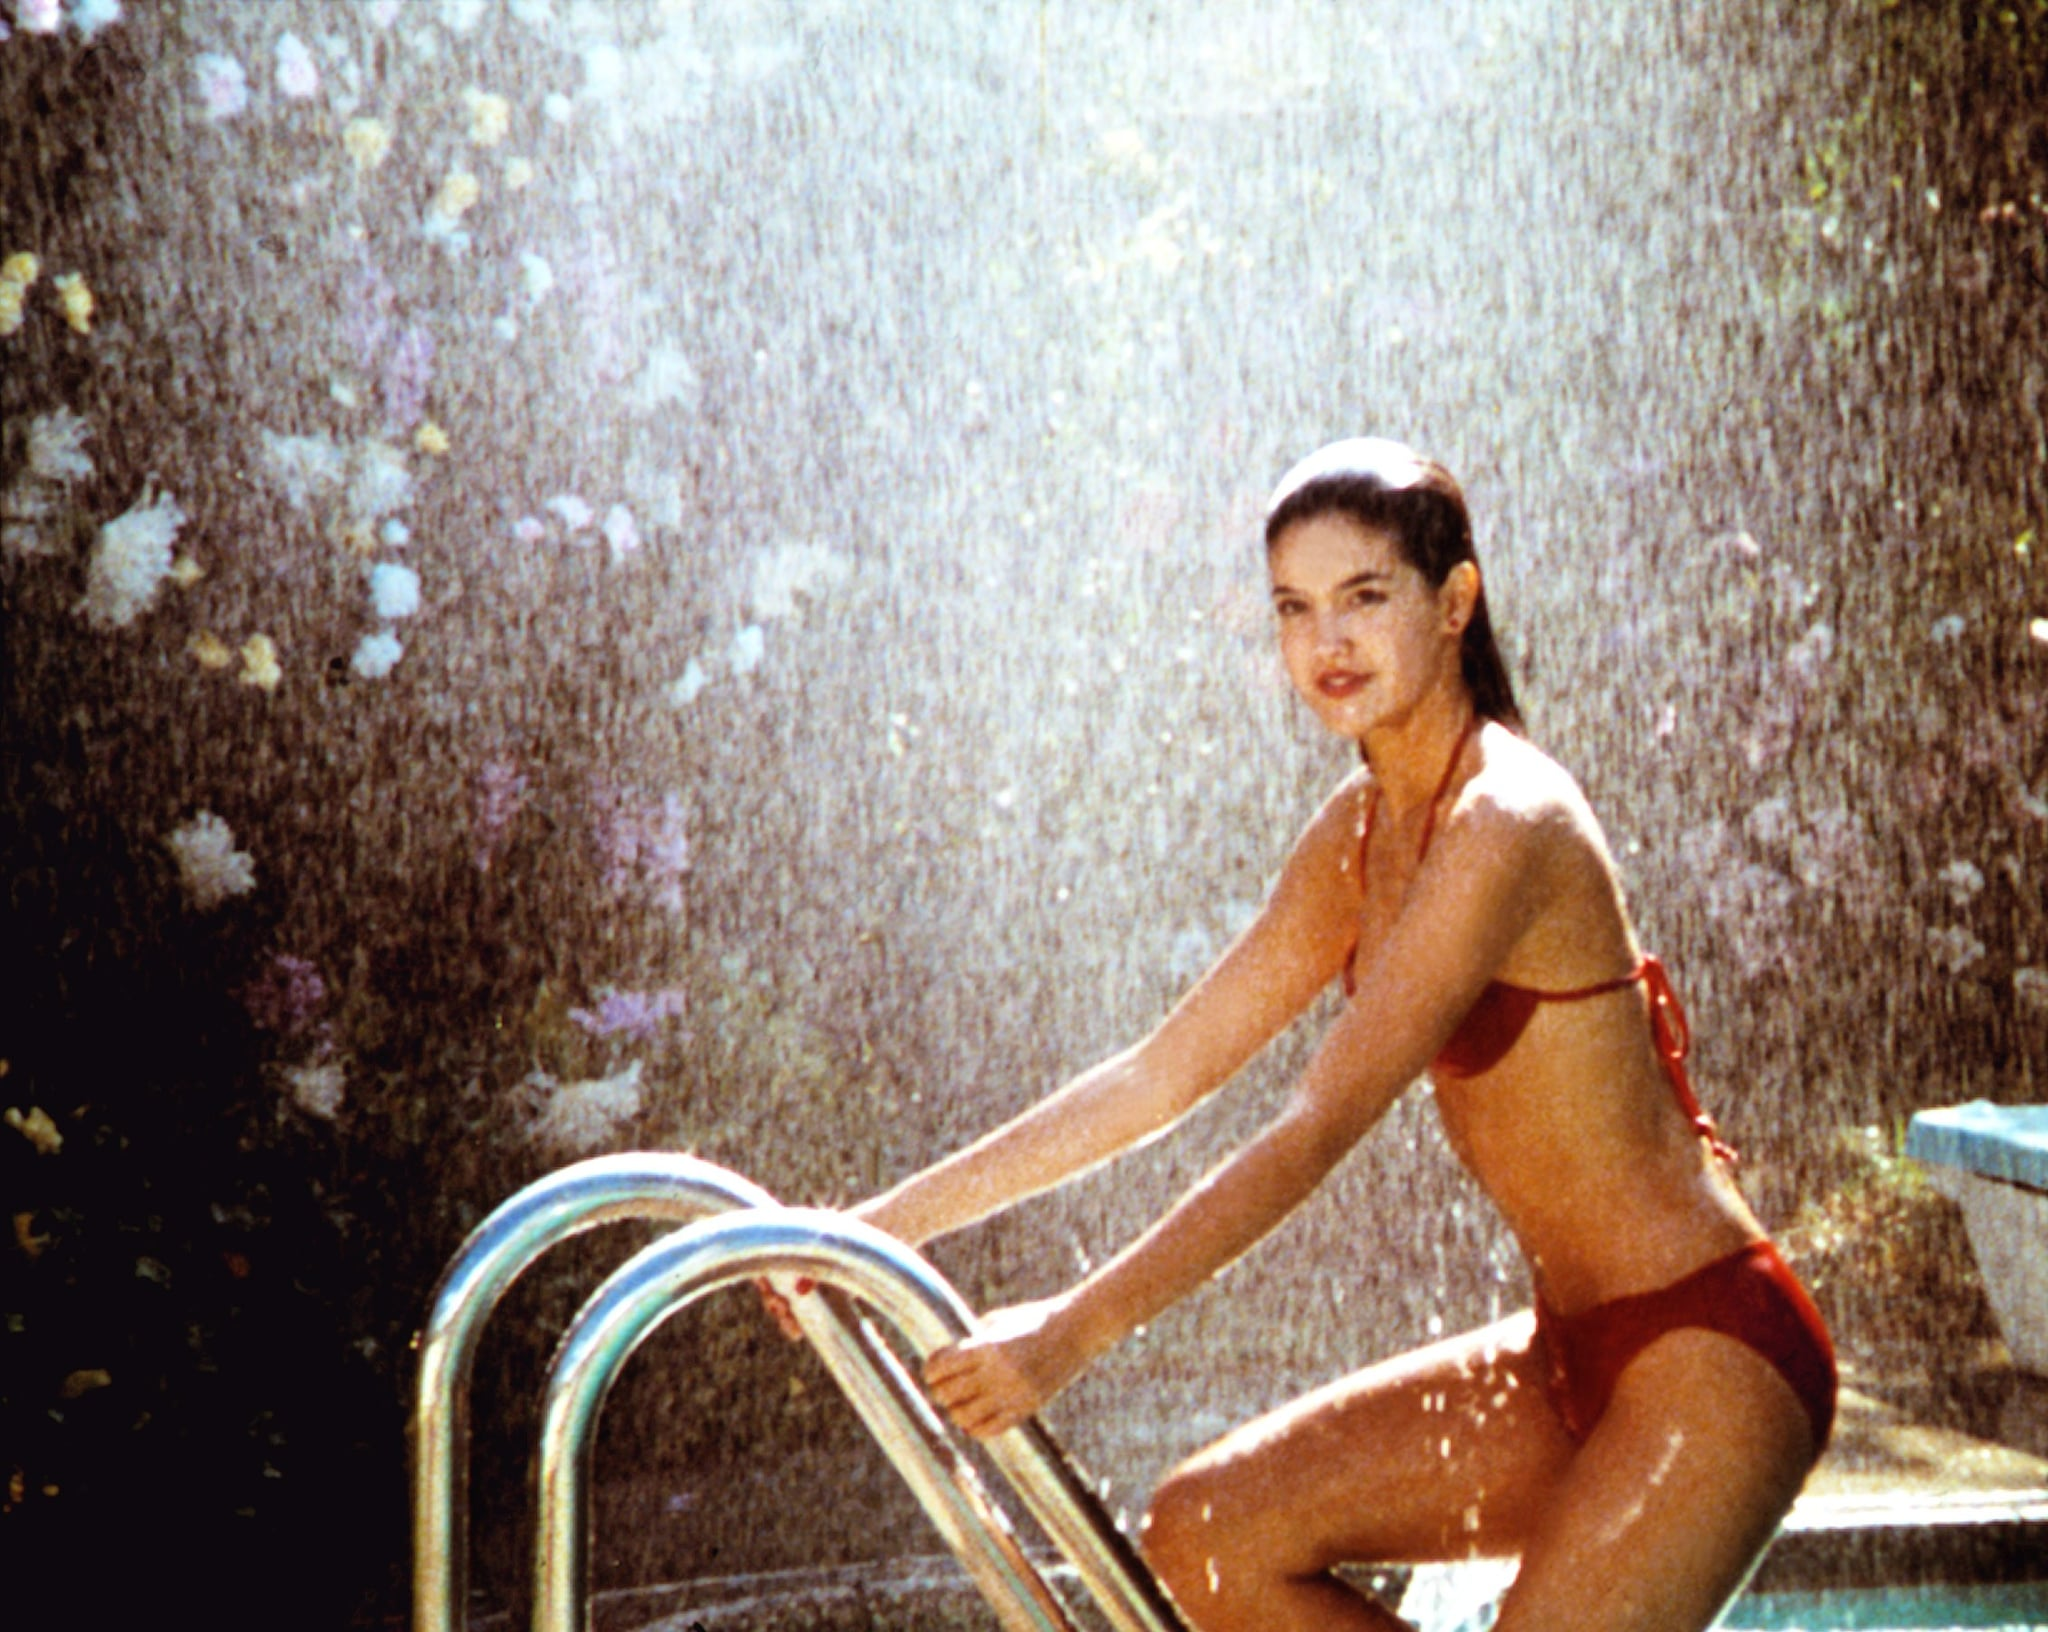 Phoebe Cates, Fast Times at Ridgemont High